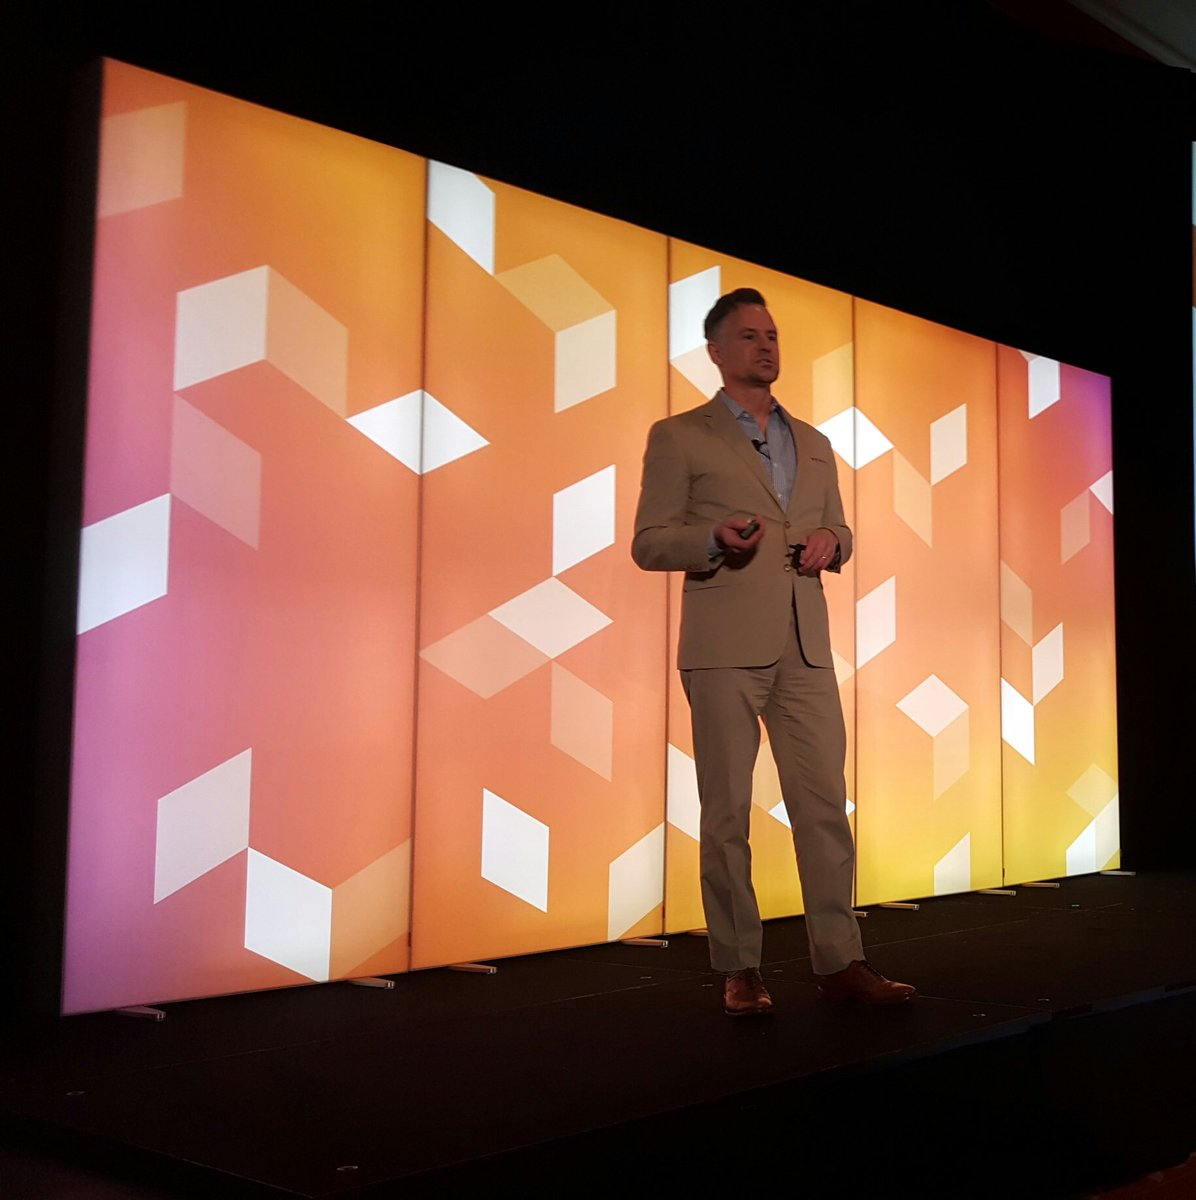 magento: Better word for omnichannel: Unified, because it's customer centric @mdharvey @GoCorra #MagentoImagine https://t.co/sAvhg5Z360